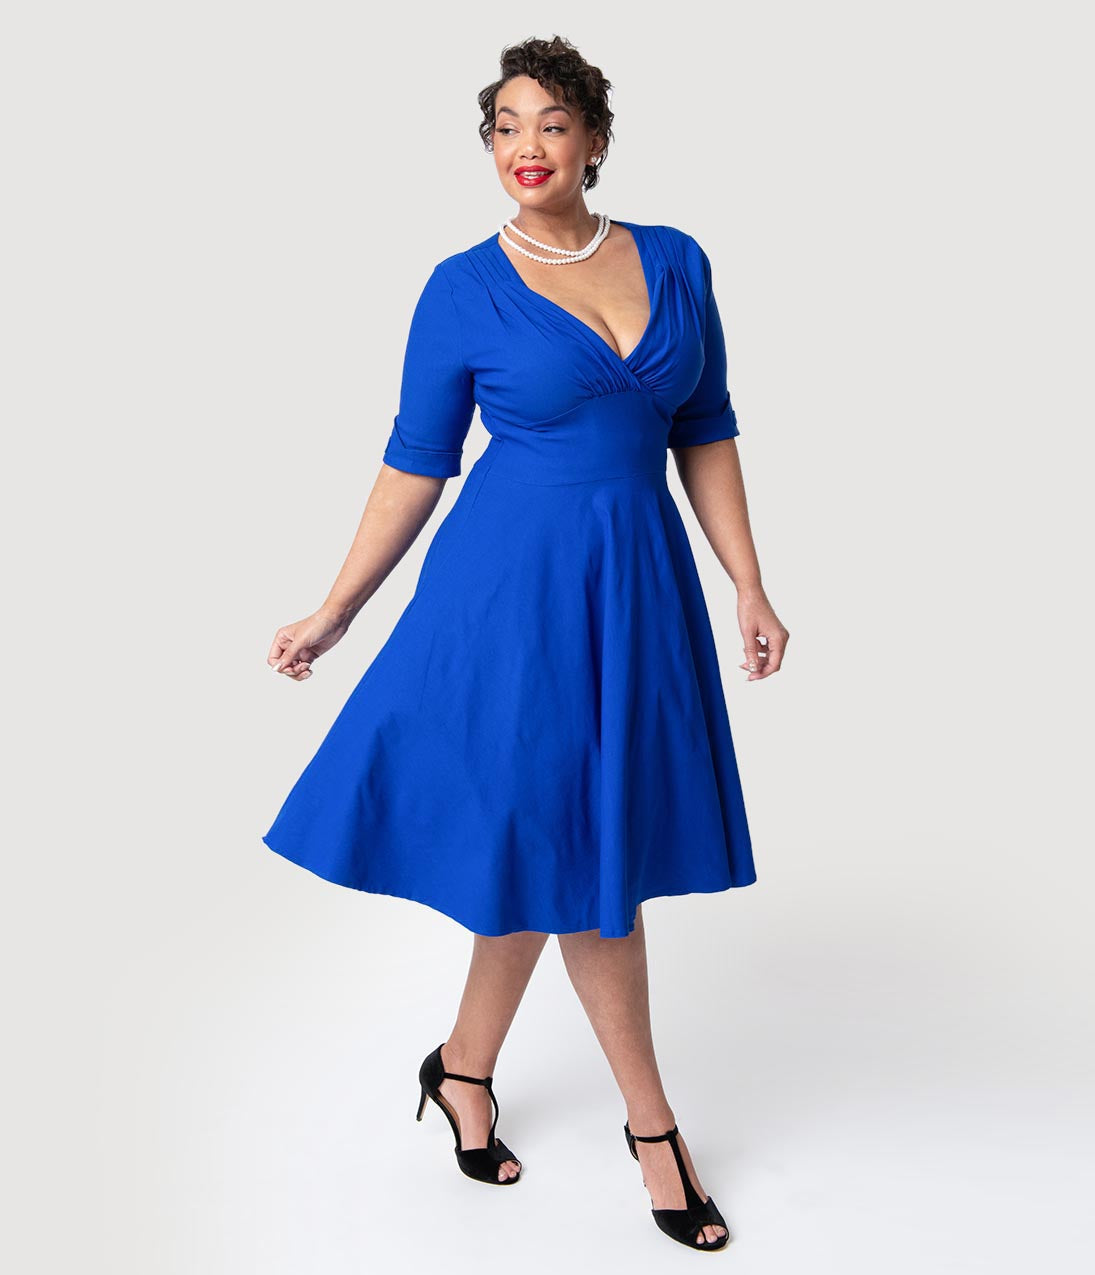 1950s Dresses, 50s Dresses | 1950s Style Dresses Unique Vintage Plus Size 1950S Royal Blue Delores Swing Dress With Sleeves $88.00 AT vintagedancer.com